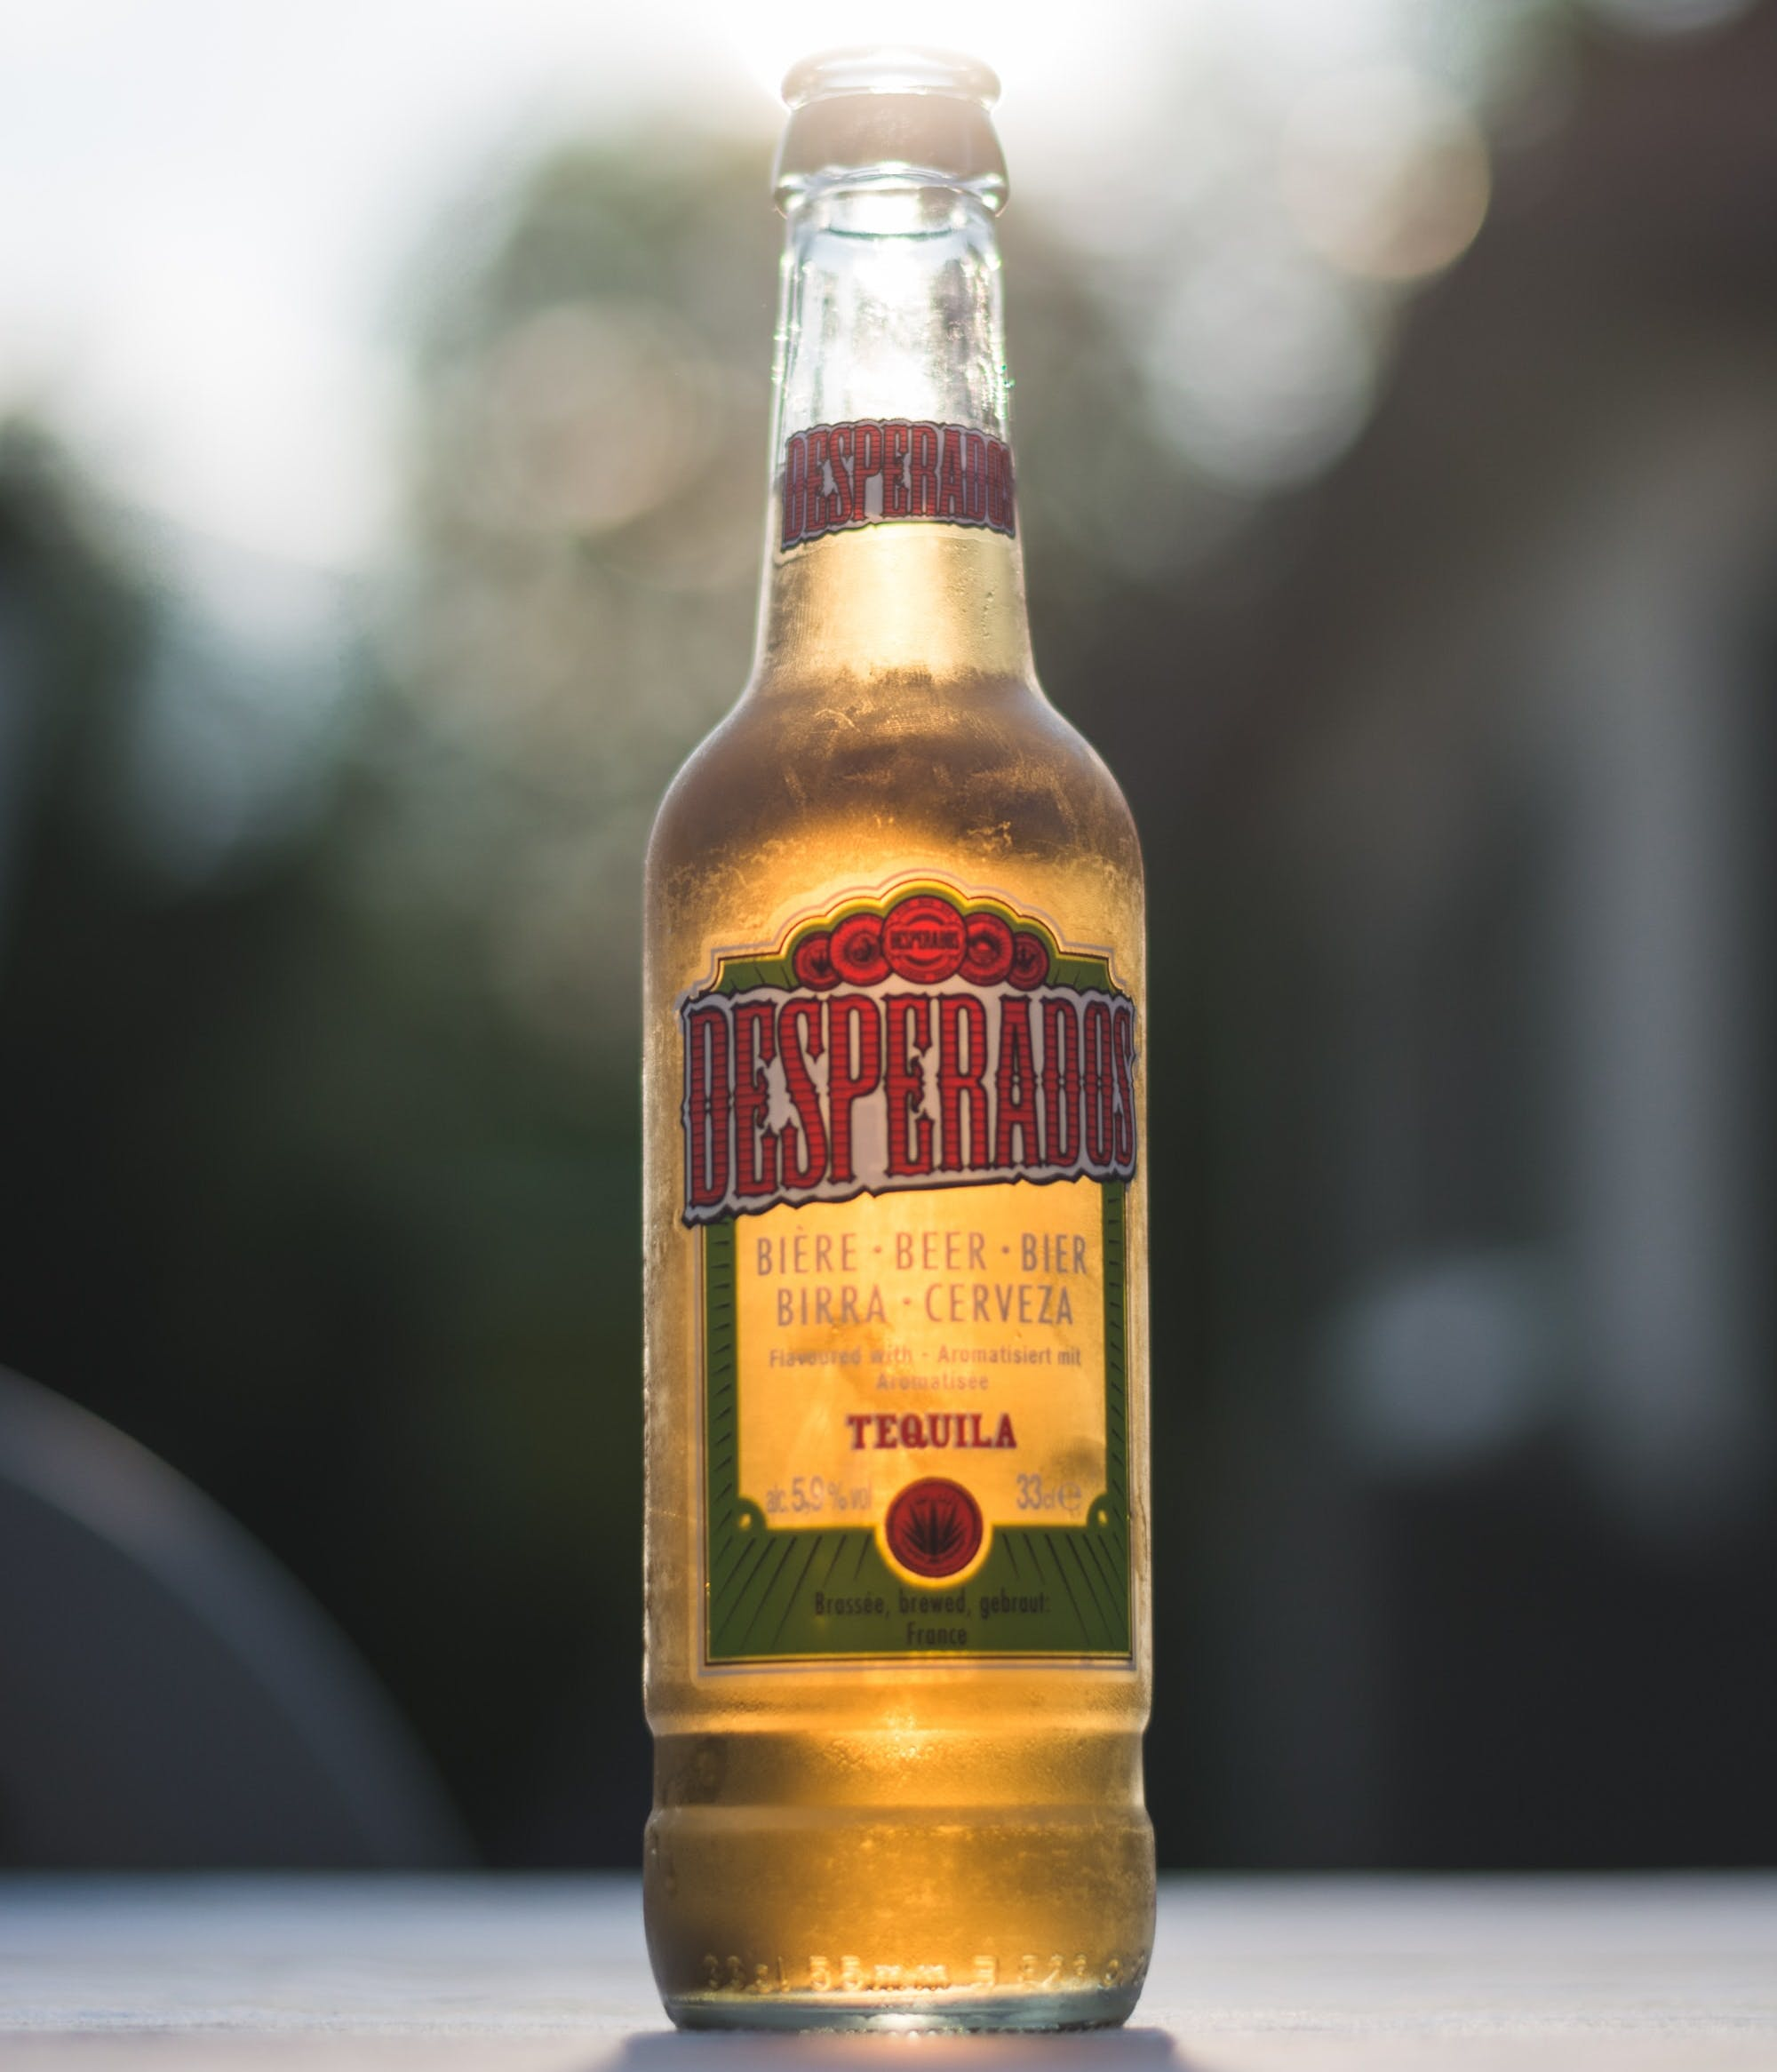 Bottle of Desperados on table